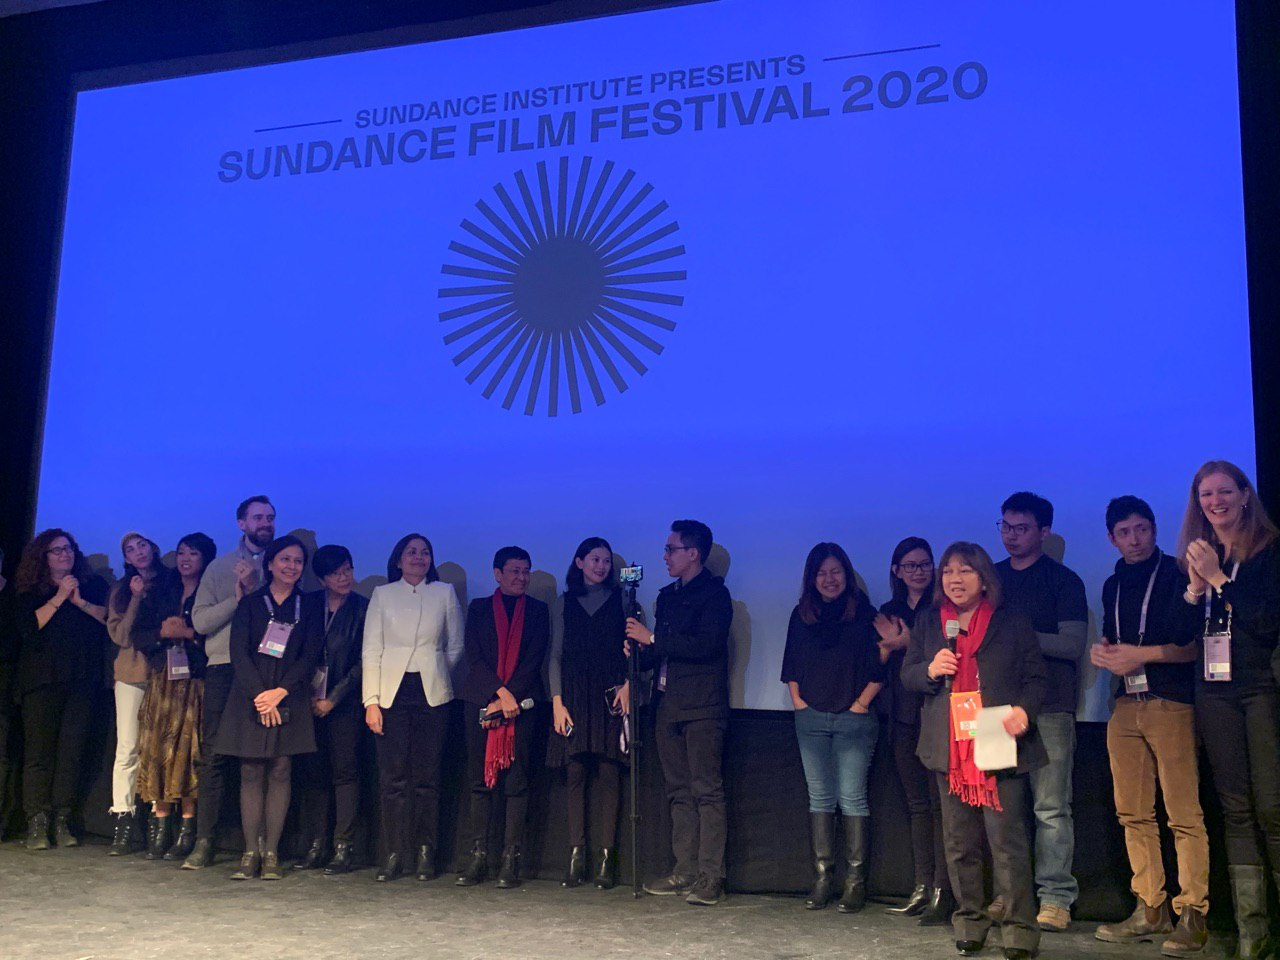 SUNDANCE. The crew and cast of 'A Thousand Cuts' after the film's premiere. Photo by Camille Elemia/Rappler